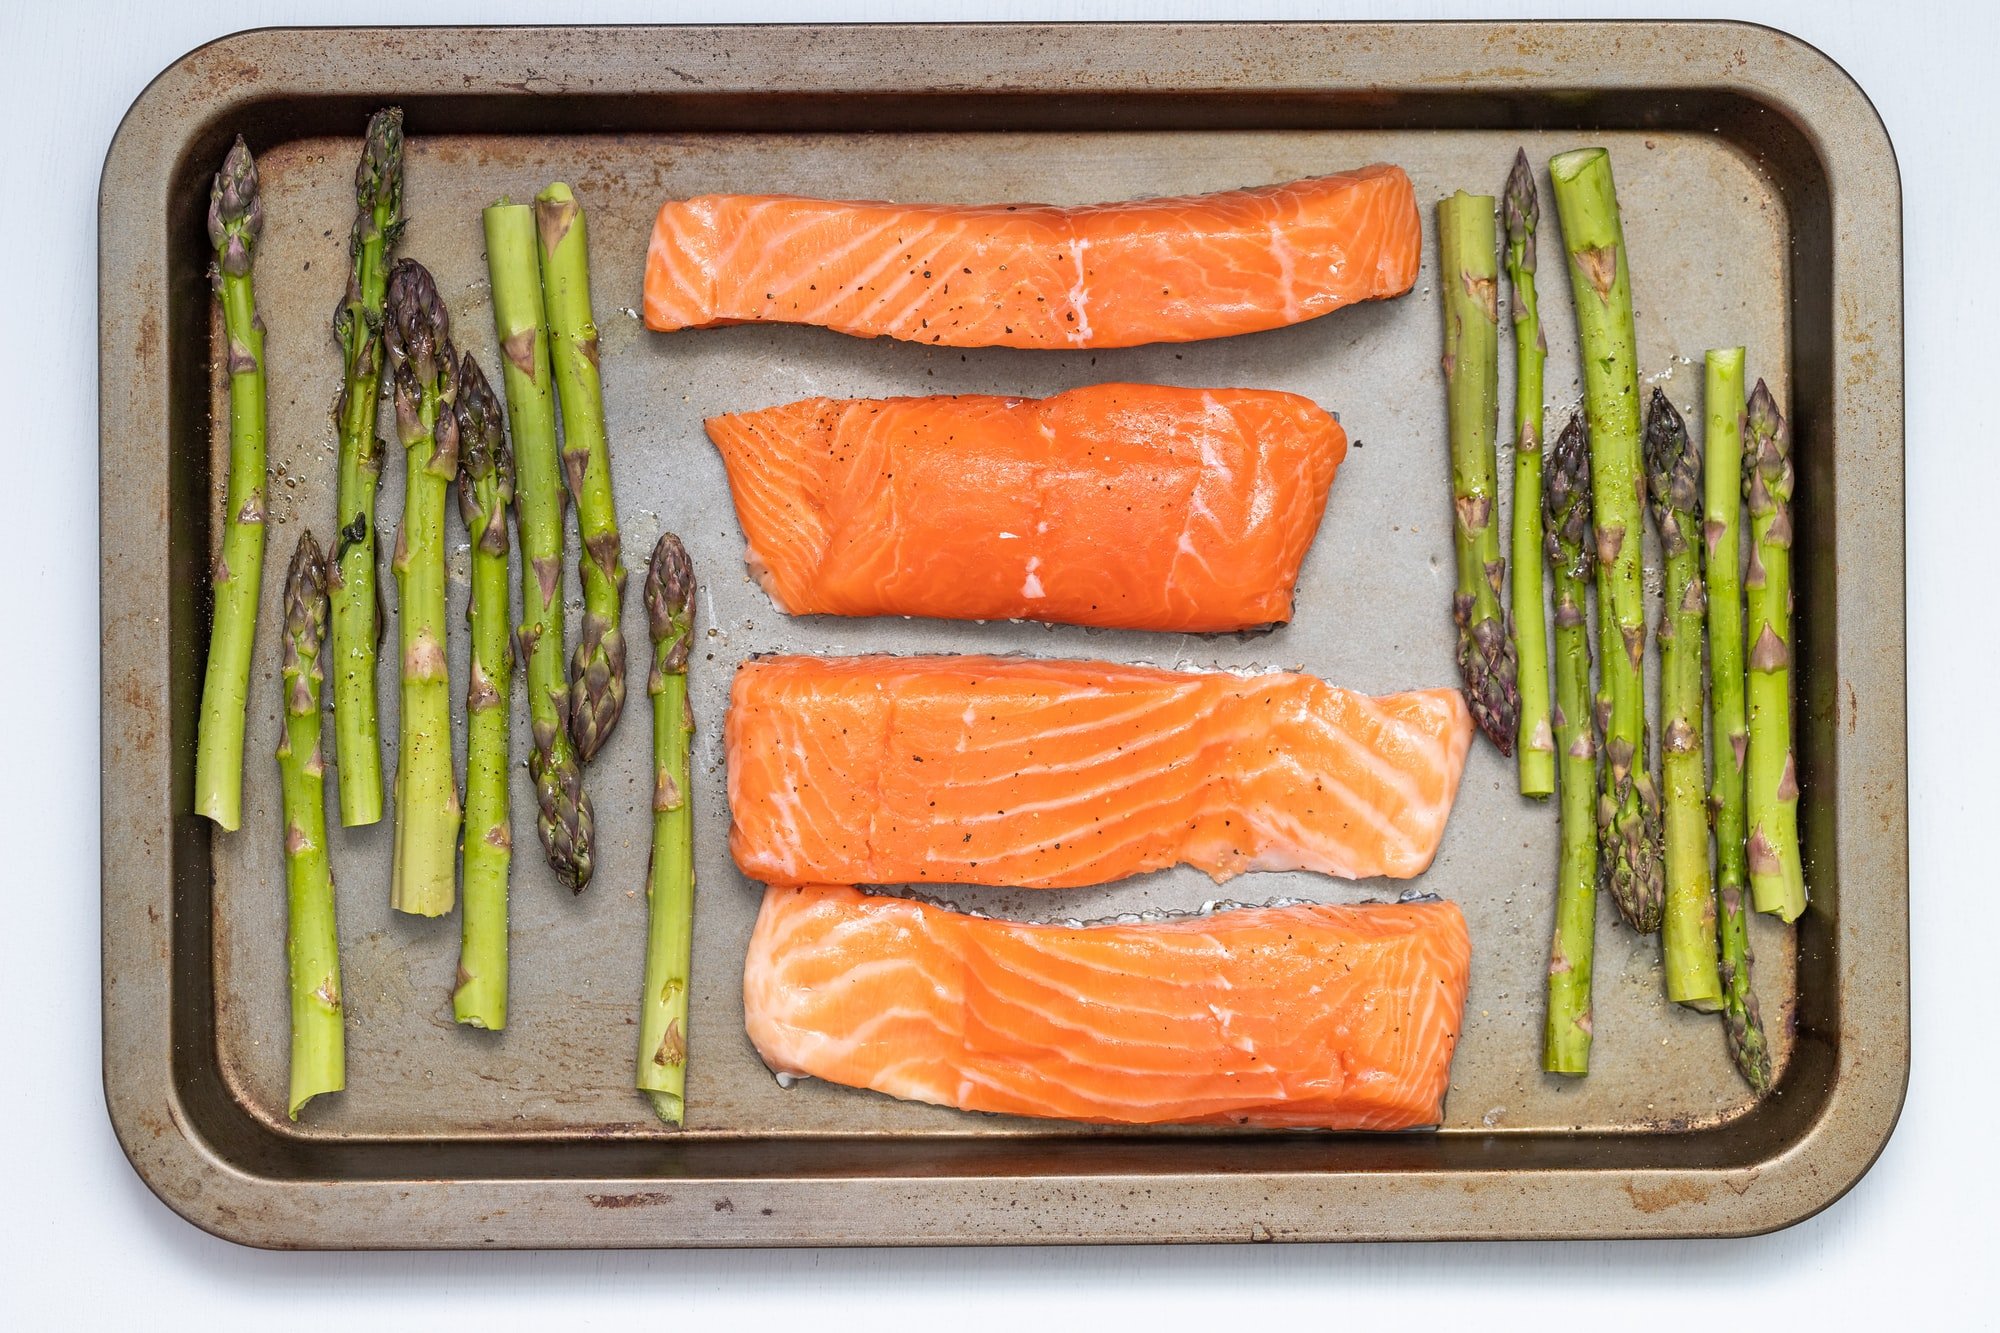 Salmon and asparagus were made for each other. The fact that they lend themselves naturally to a healthy, one-pan, weeknight dinner makes them a staple in my kitchen. They also sit right across from each other in the color wheel, making them permanently ready for their close up.